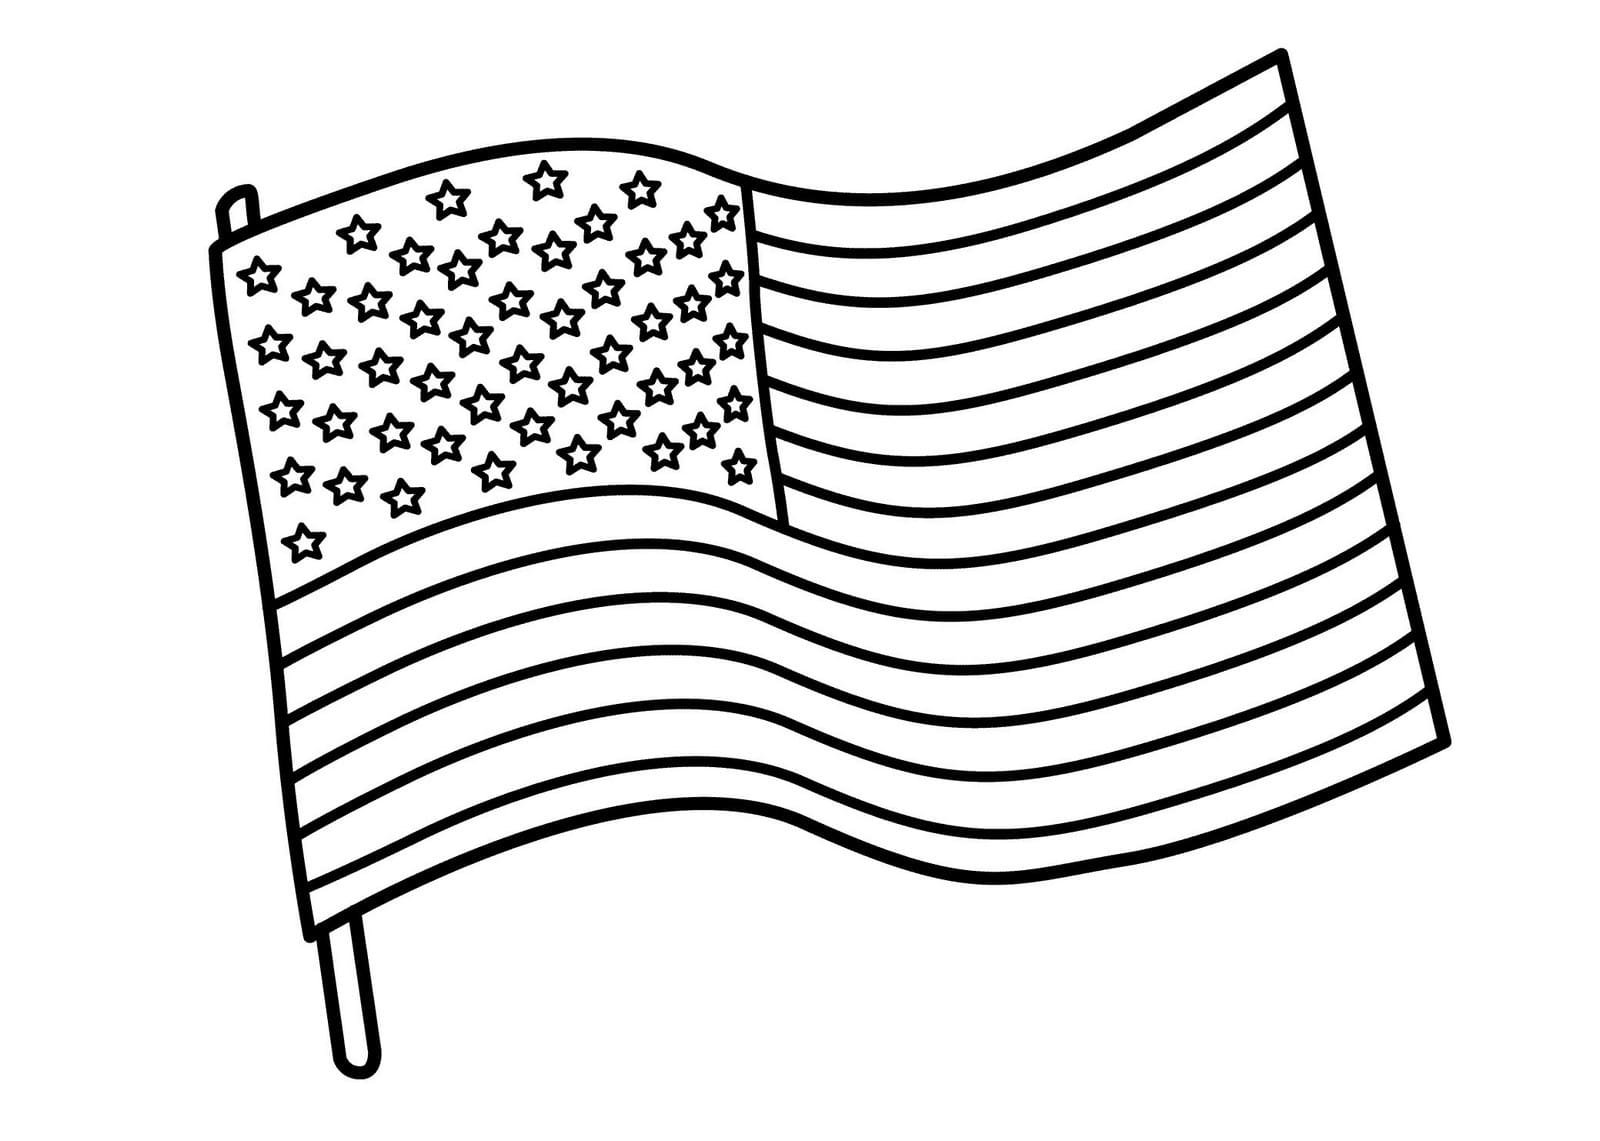 america coloring pages american flag coloring pages best coloring pages for kids america coloring pages